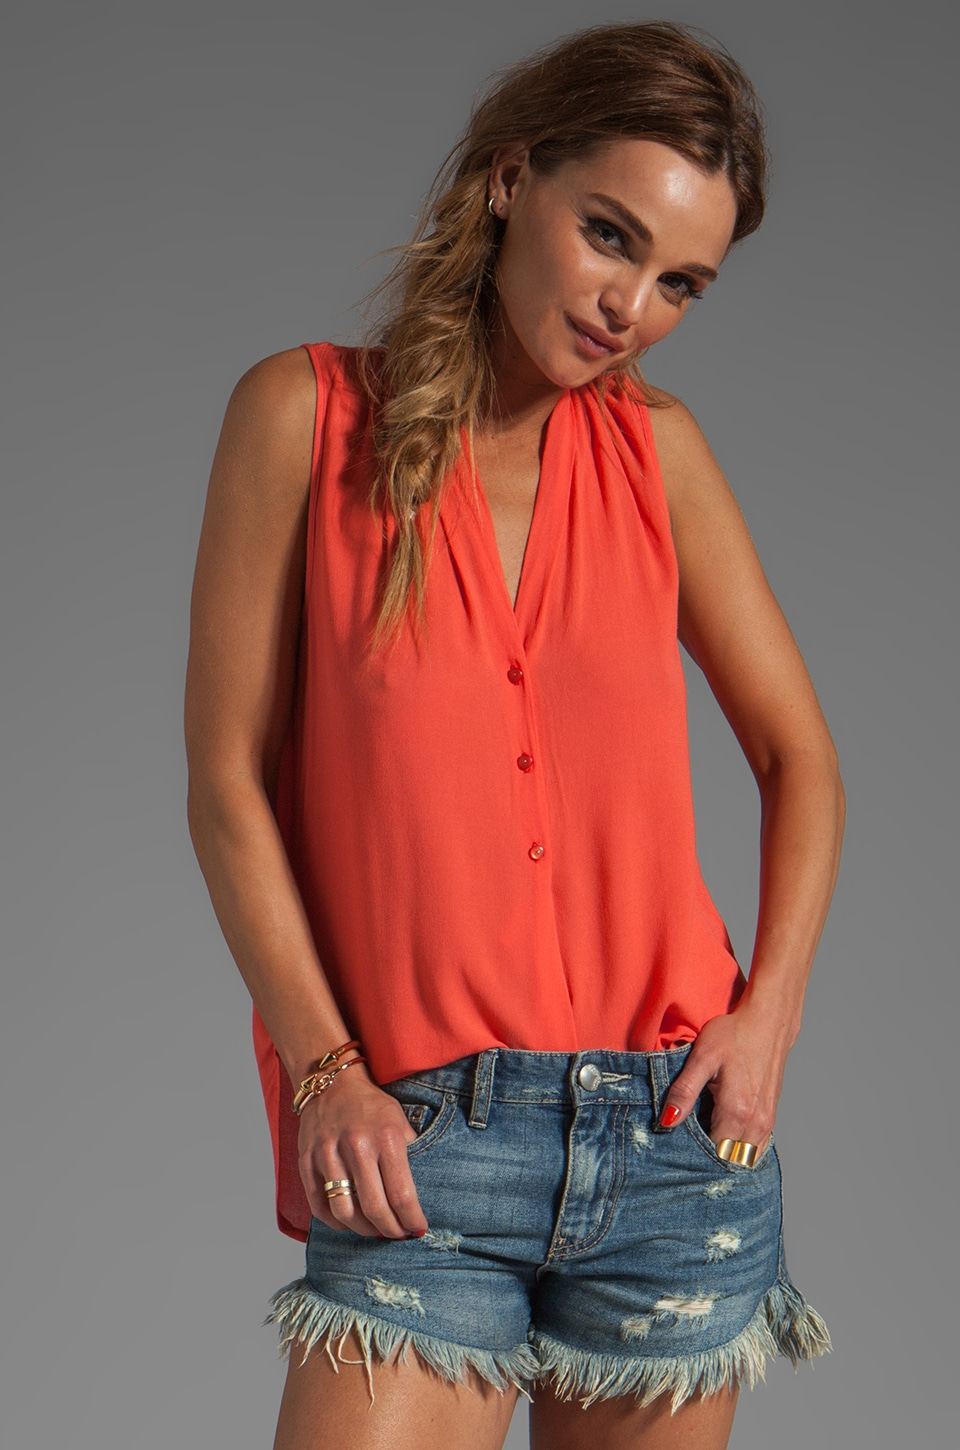 Ella Moss Stella Top in Coral